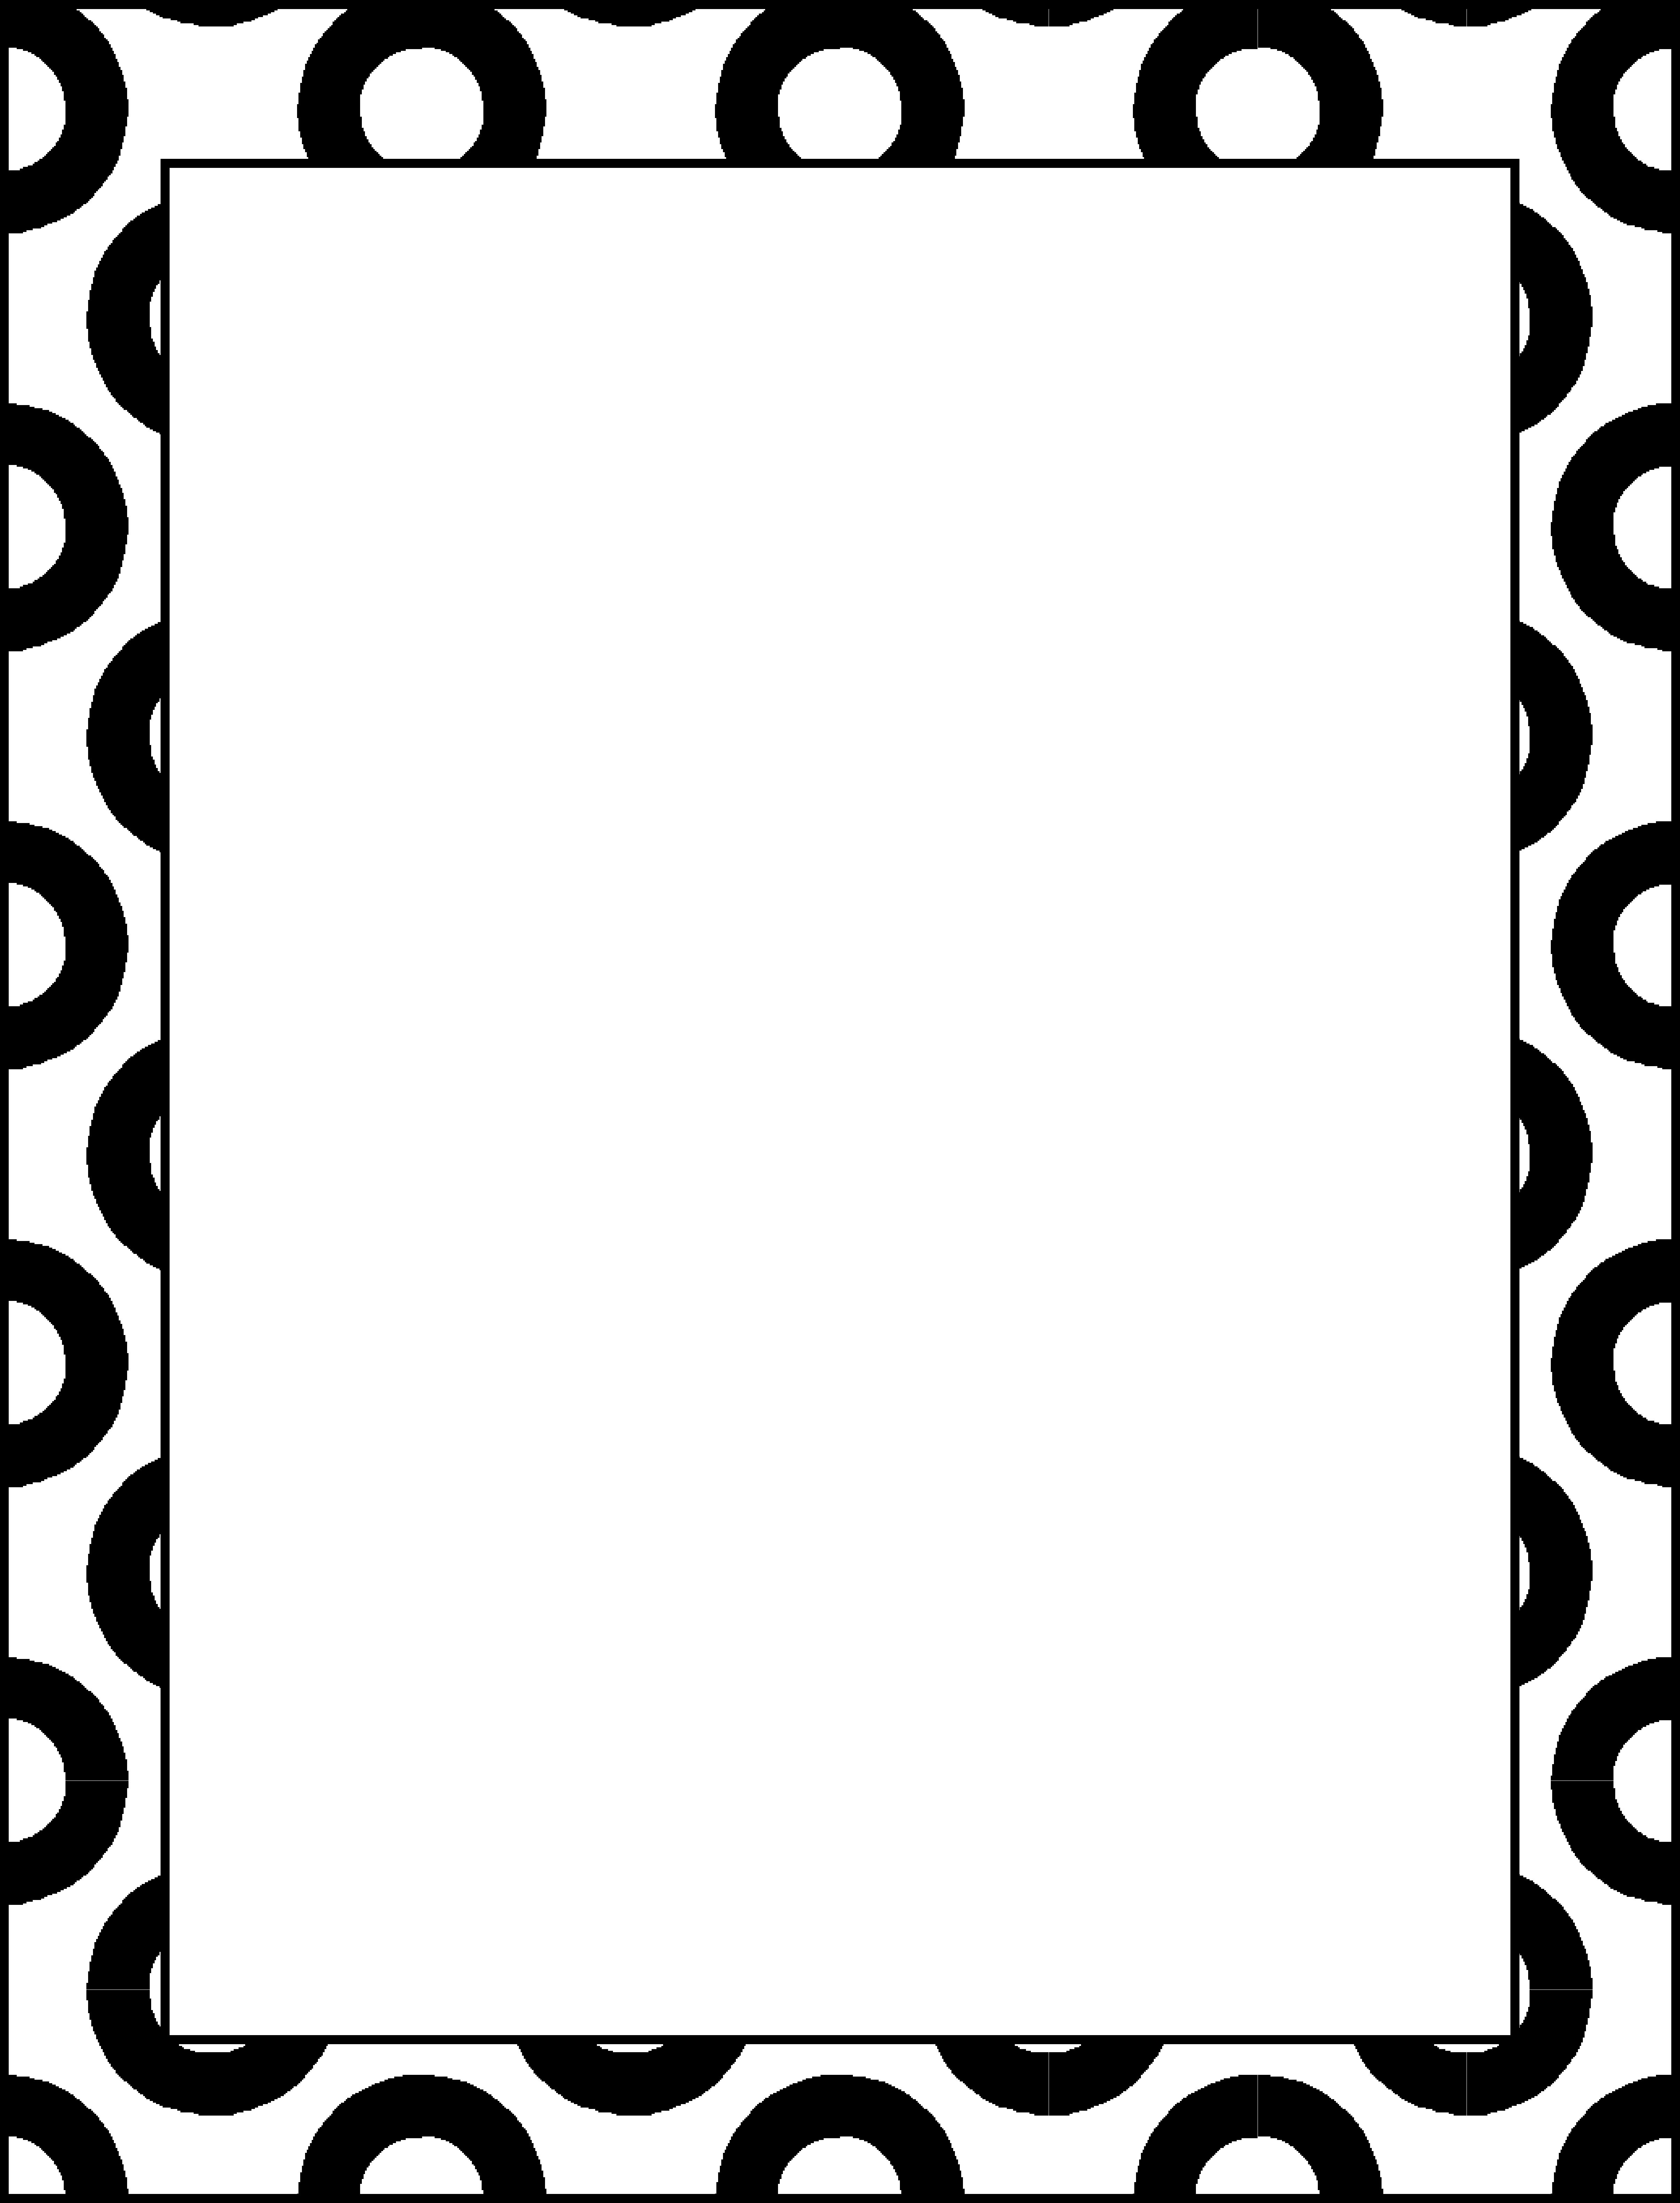 Free Simple Border Designs For School Projects To Draw Download